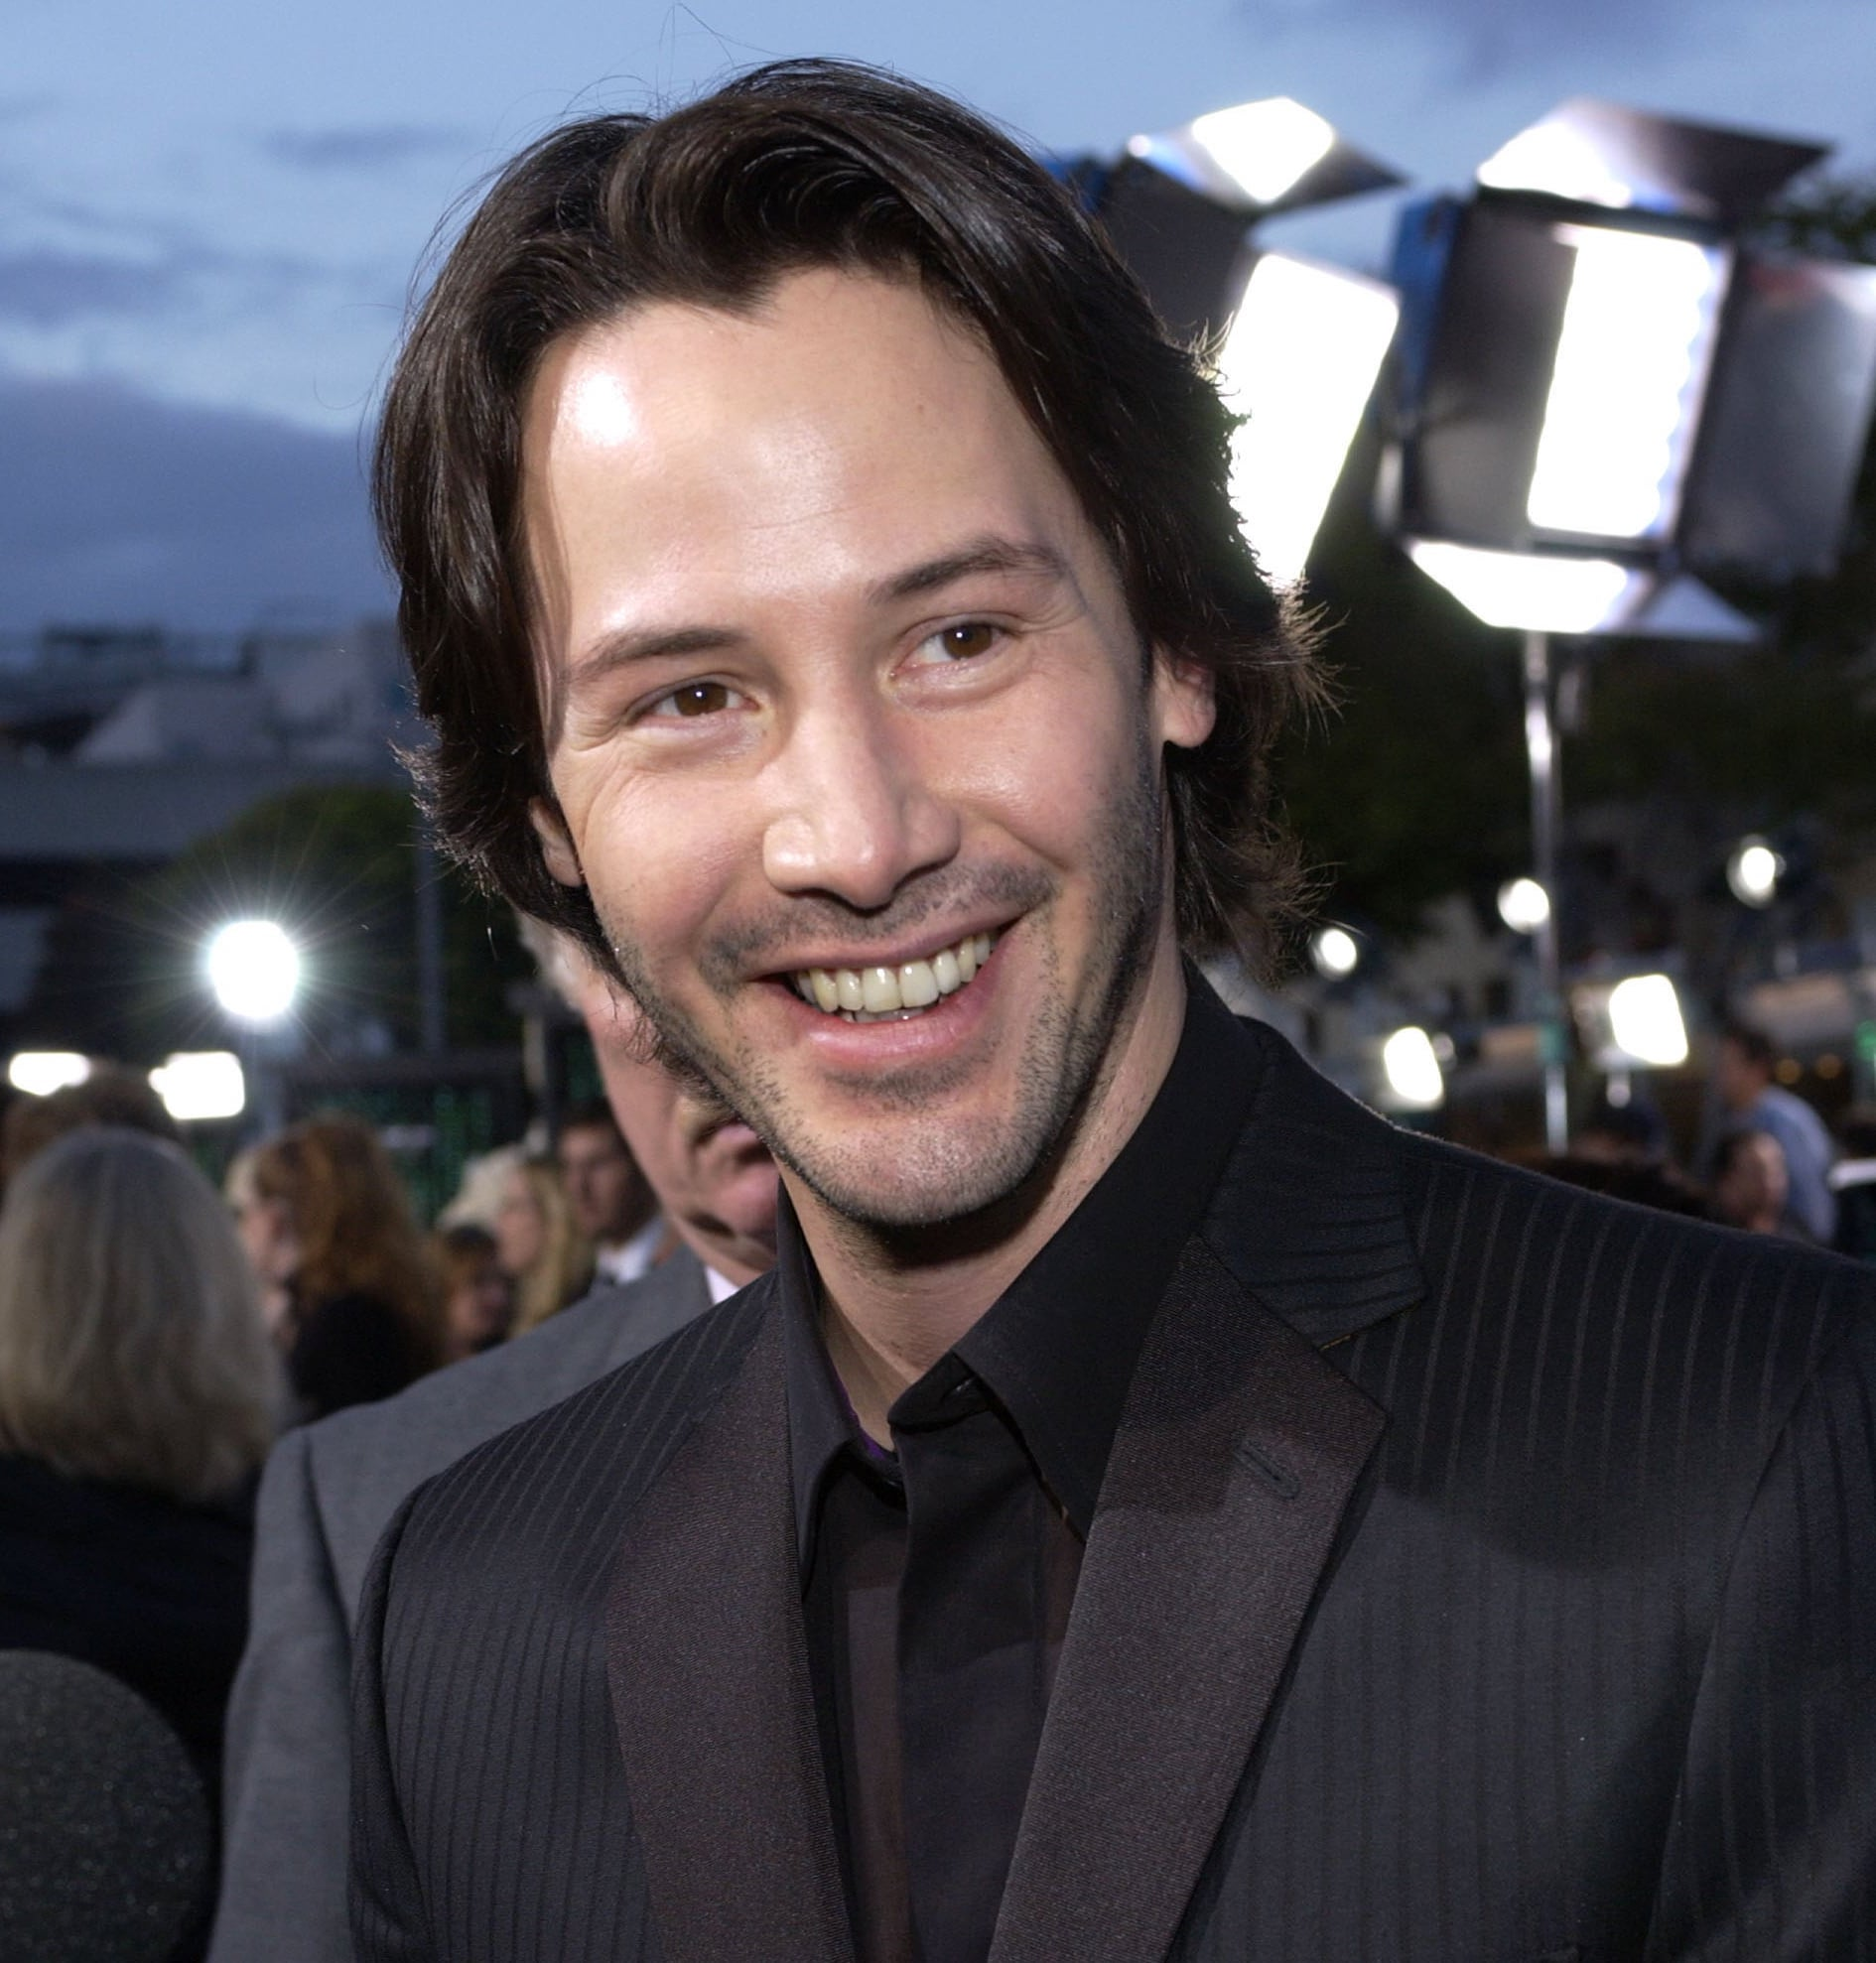 Pictures Keanu Reeves Smiling 20 Unreal Facts You Never Knew About The Matrix